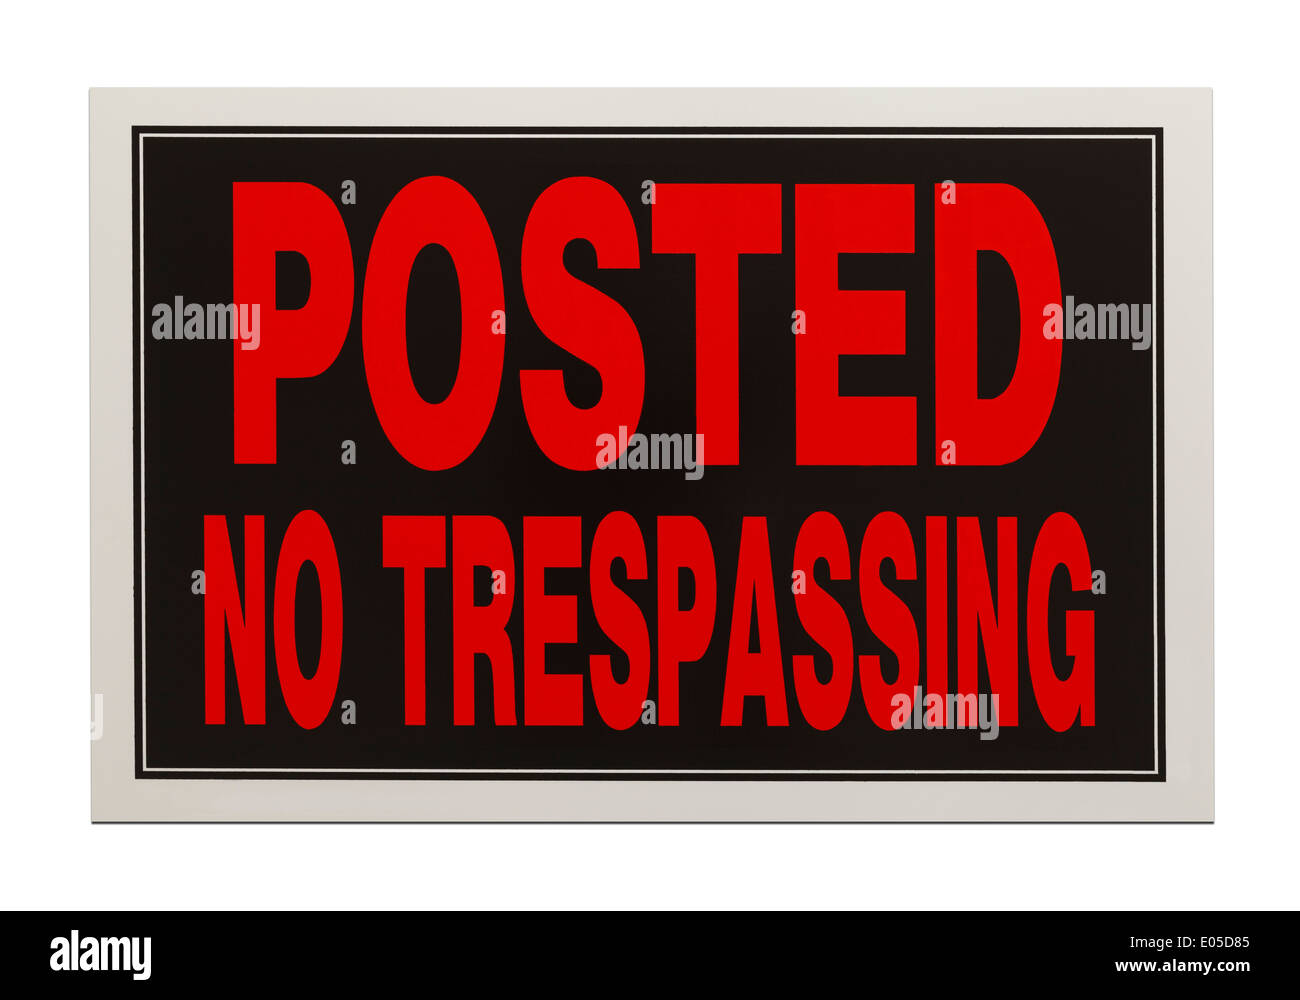 Red and Black, Posted No Trespassing Sign Isolated on White Background. - Stock Image